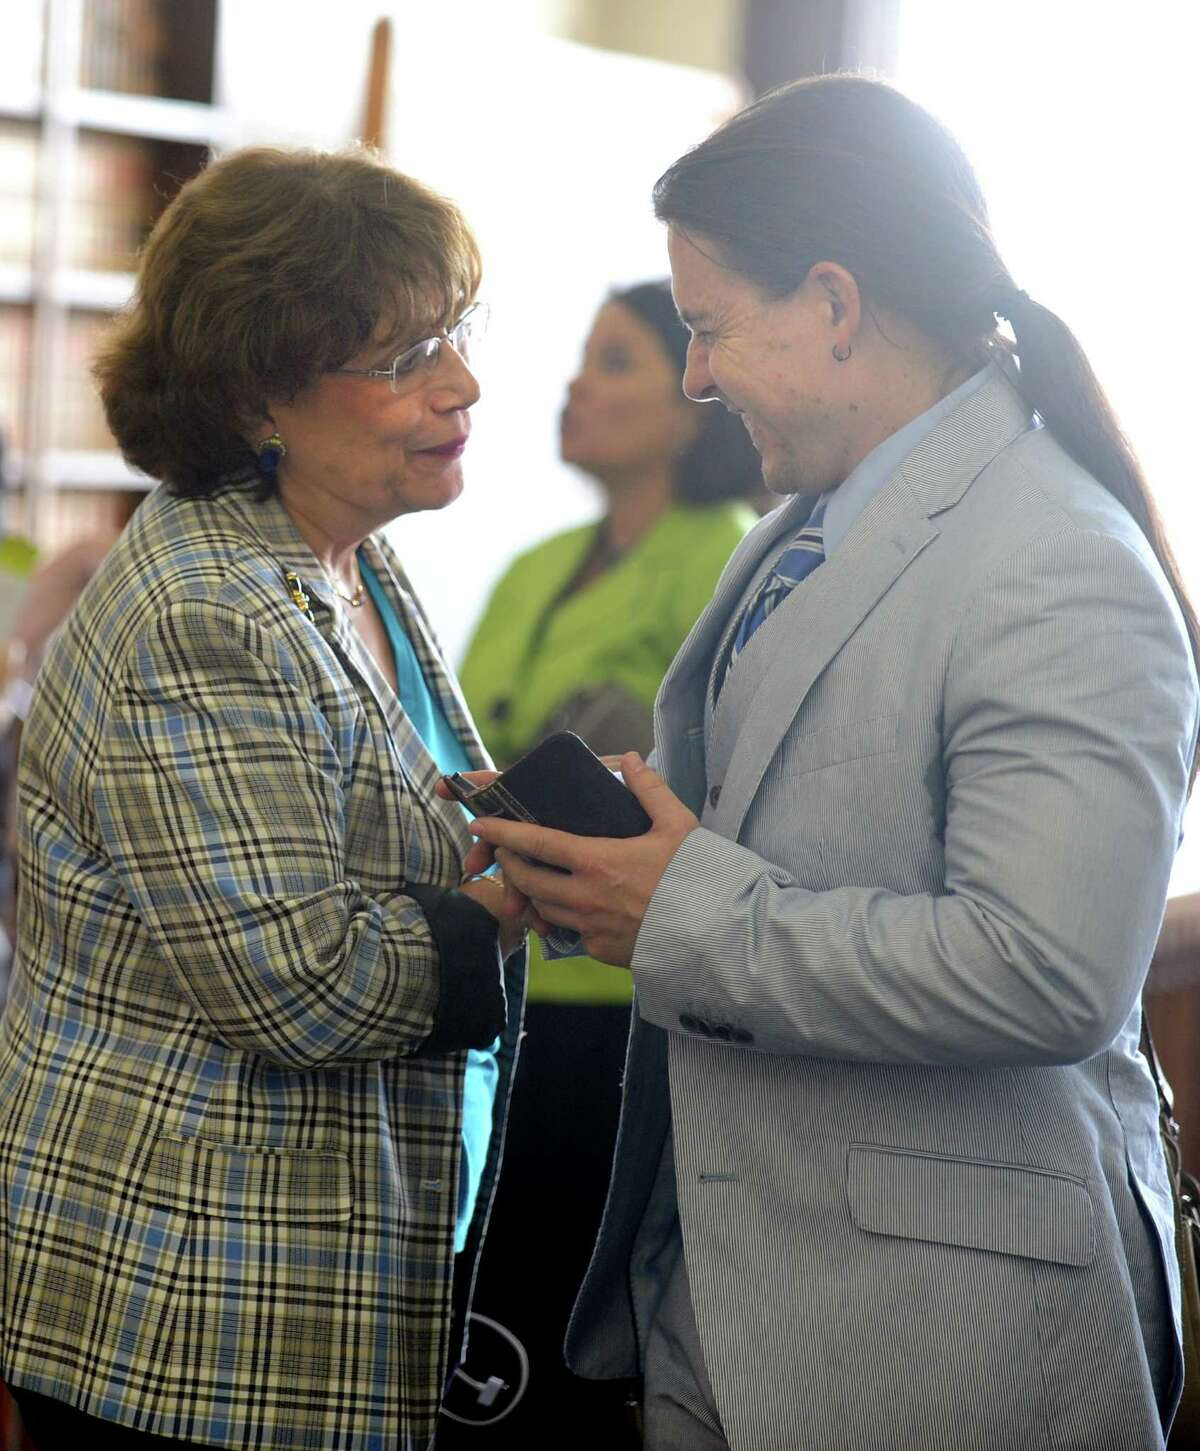 Plaintiff Carmen Lopez and Attorney Keving Smith talk following Judge Barbara Bellis's ruling to dissolve the stay that was keeping Paul Vallas in his job as Bridgeport Superintendent of Schools pending an appeal Wednesday, July 10, 2013 in Bridgeport Superior Court.